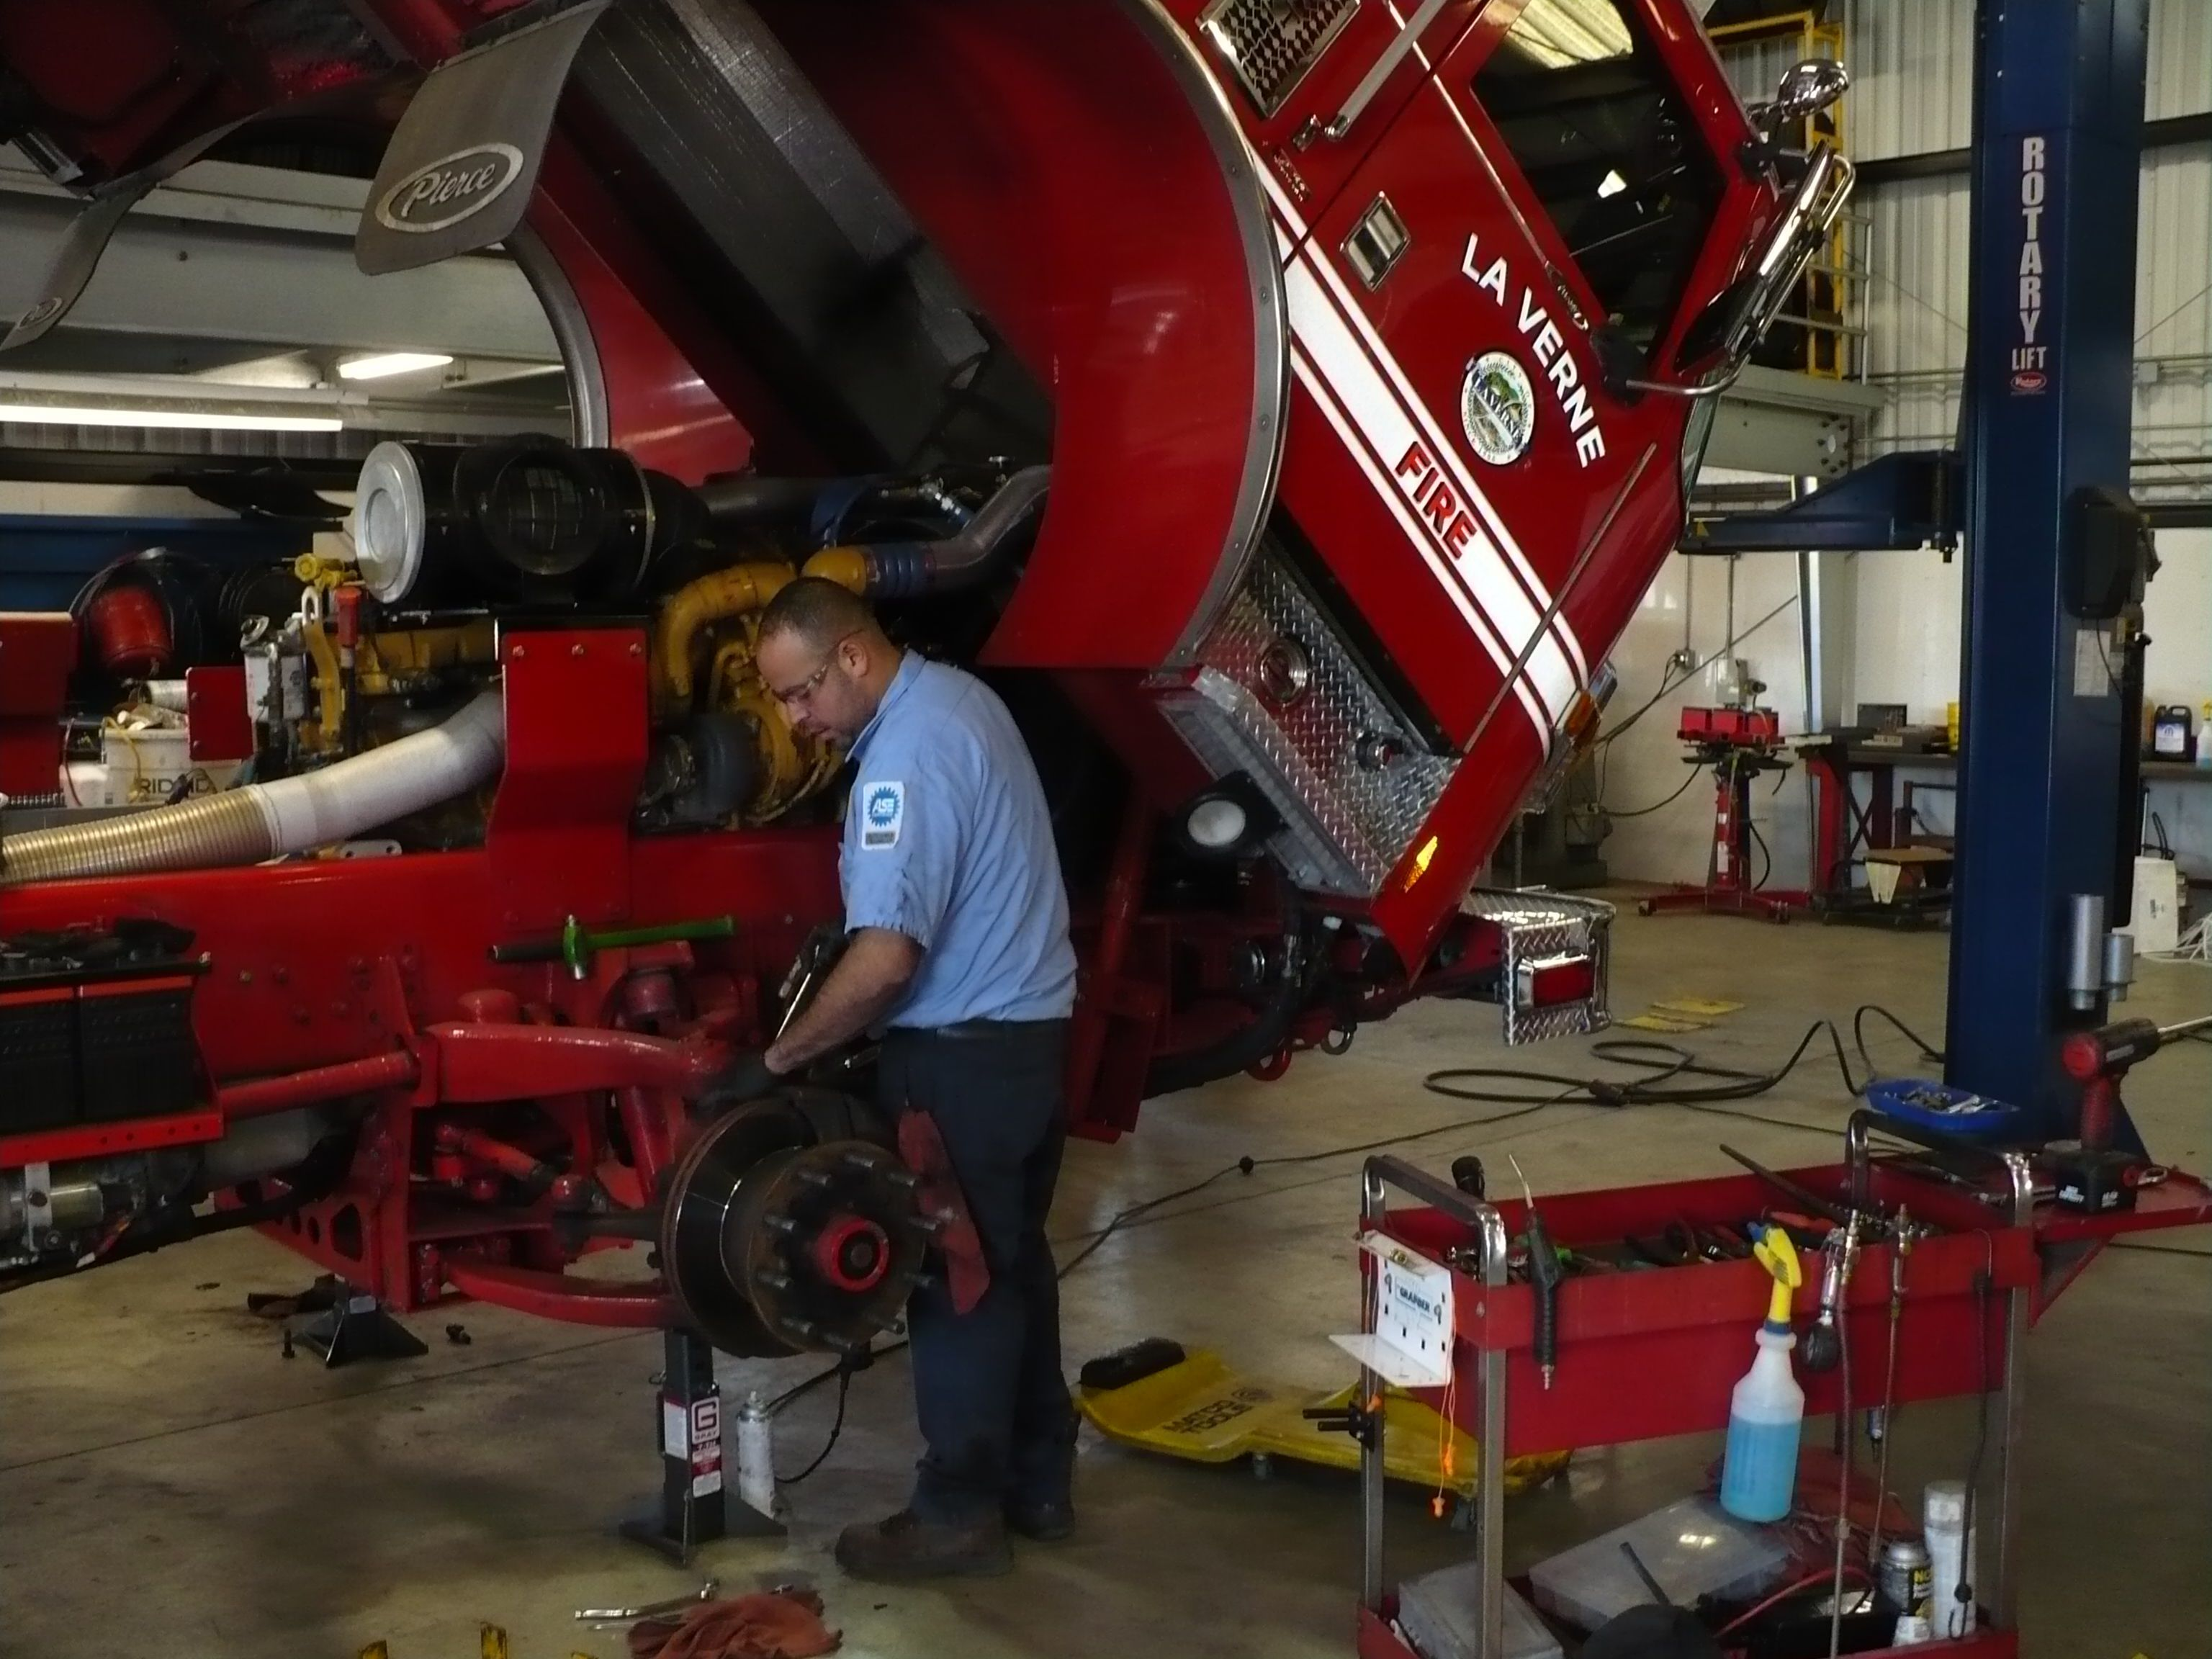 Finding the Right Maintenance Balance: Small Fleets Speak Out